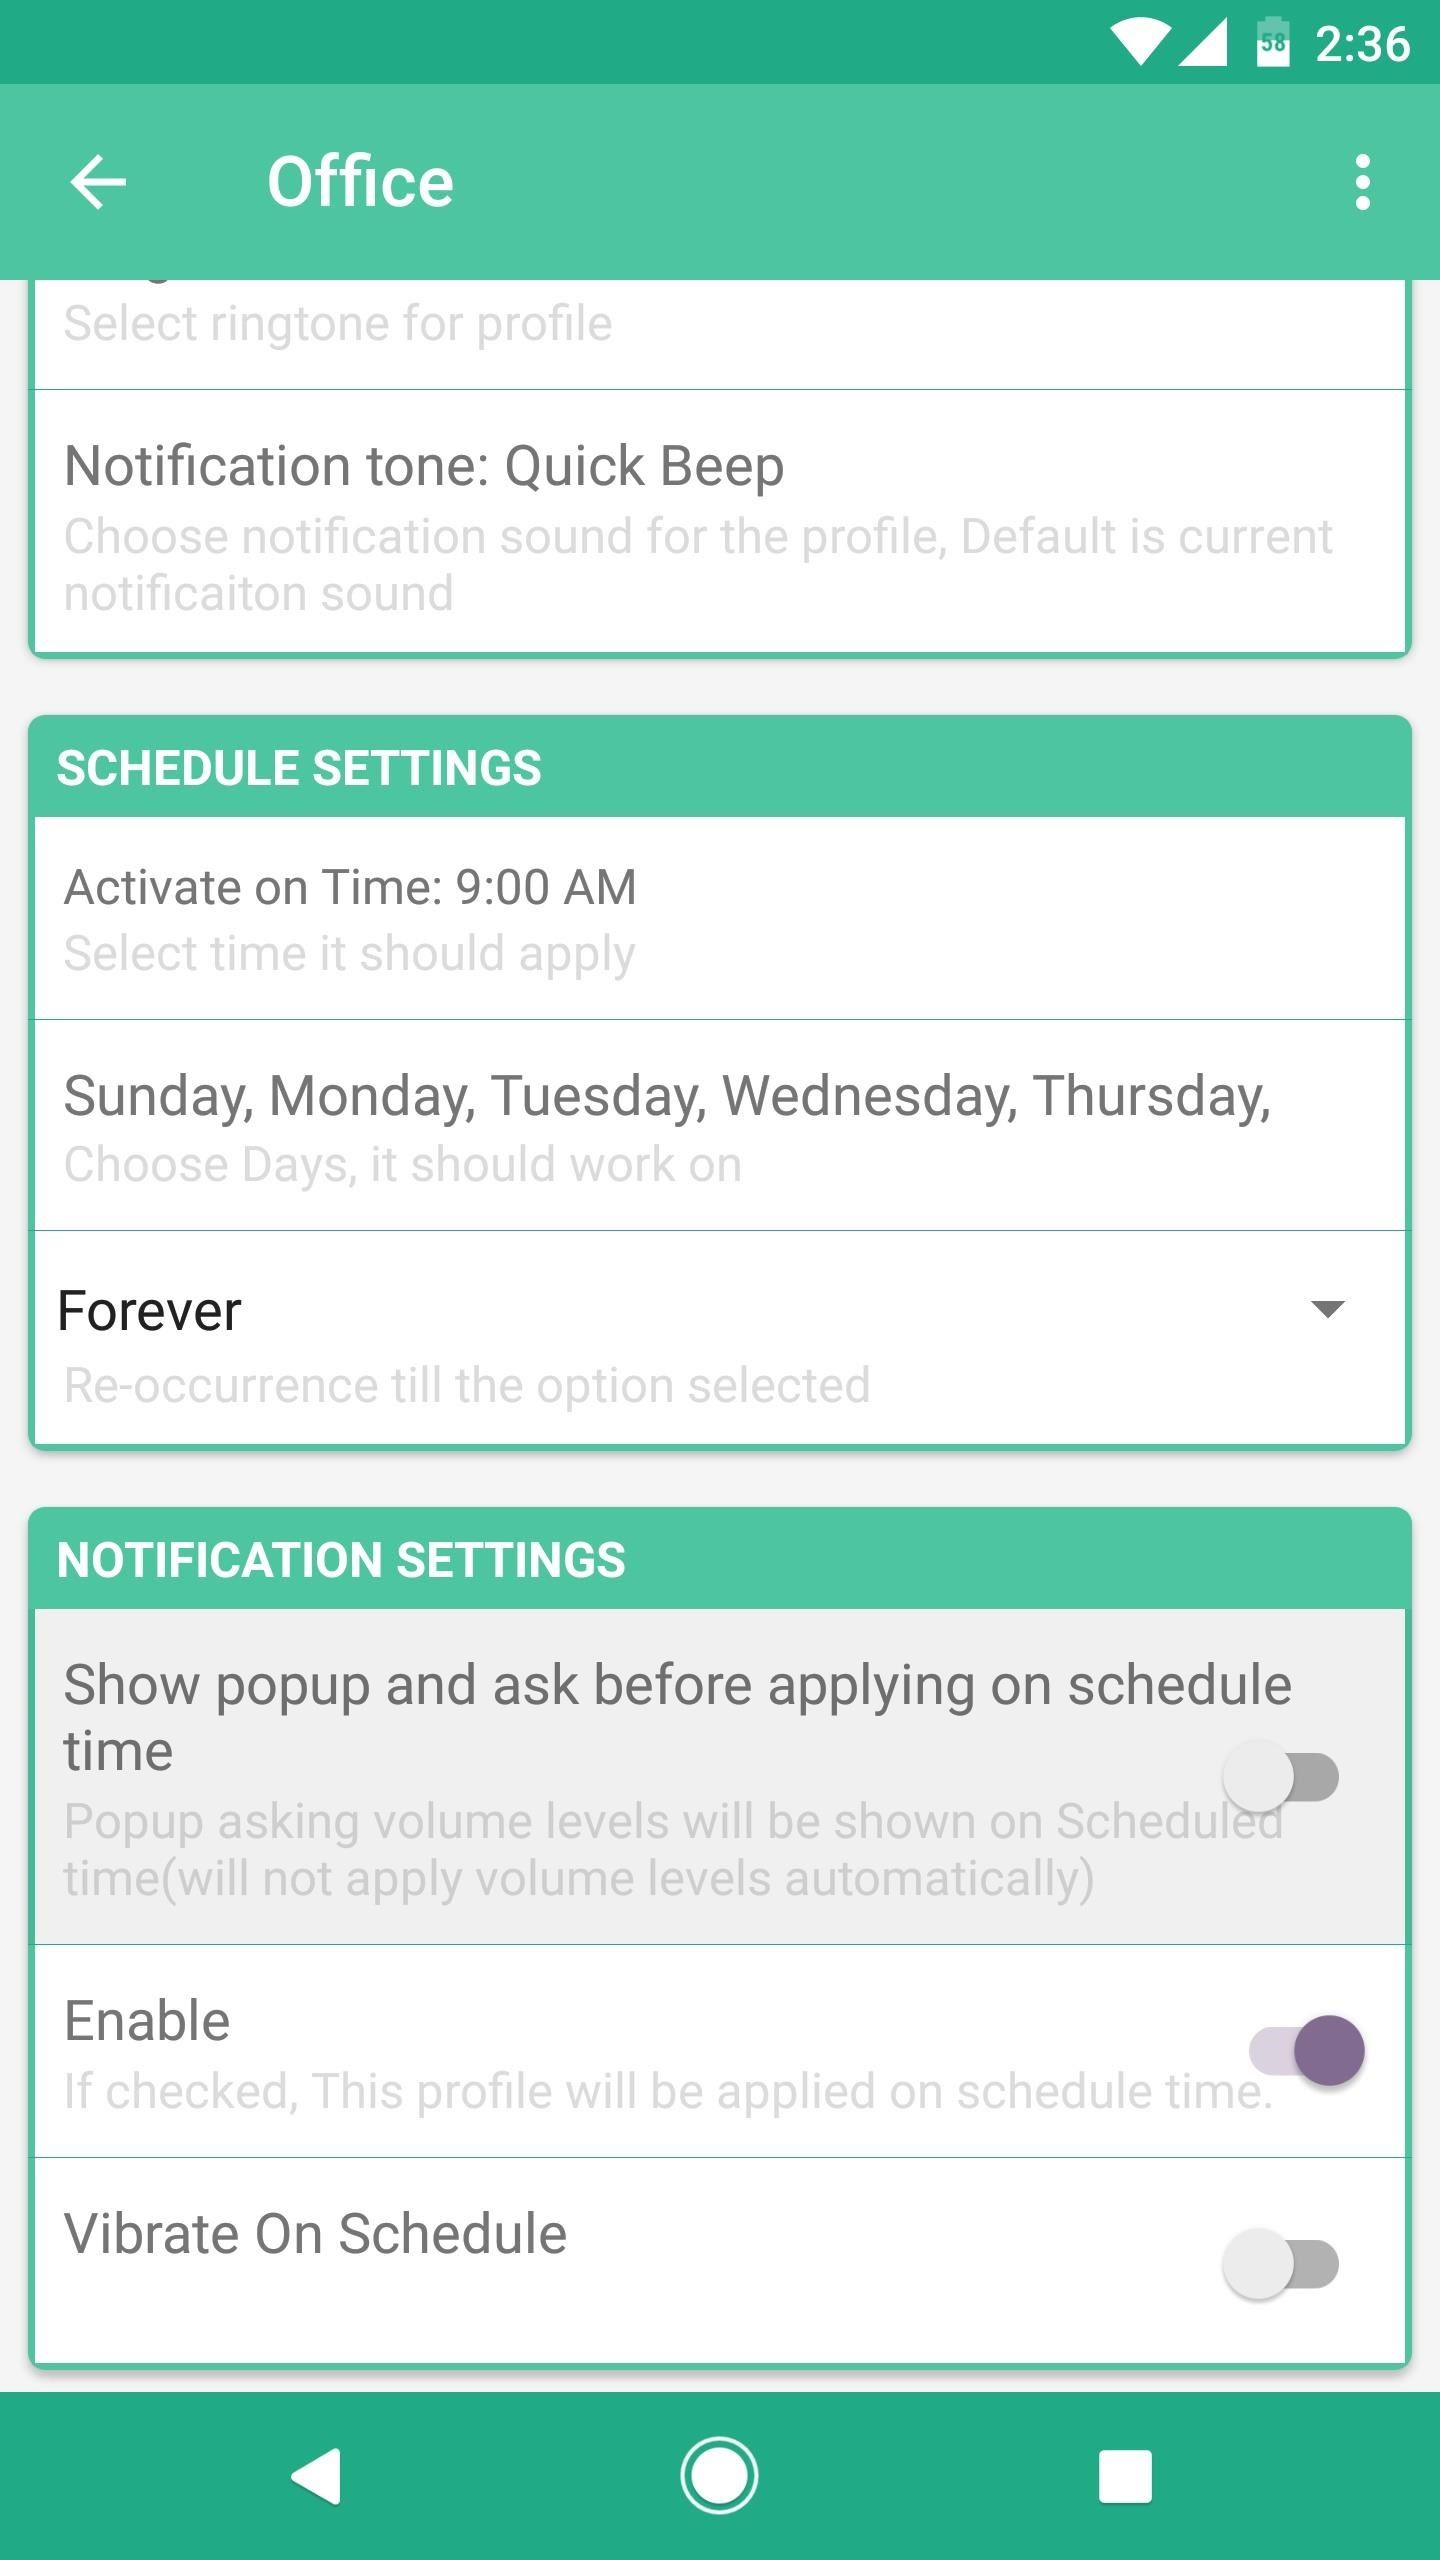 How to Set Volume Levels to Change During Scheduled Times on Android